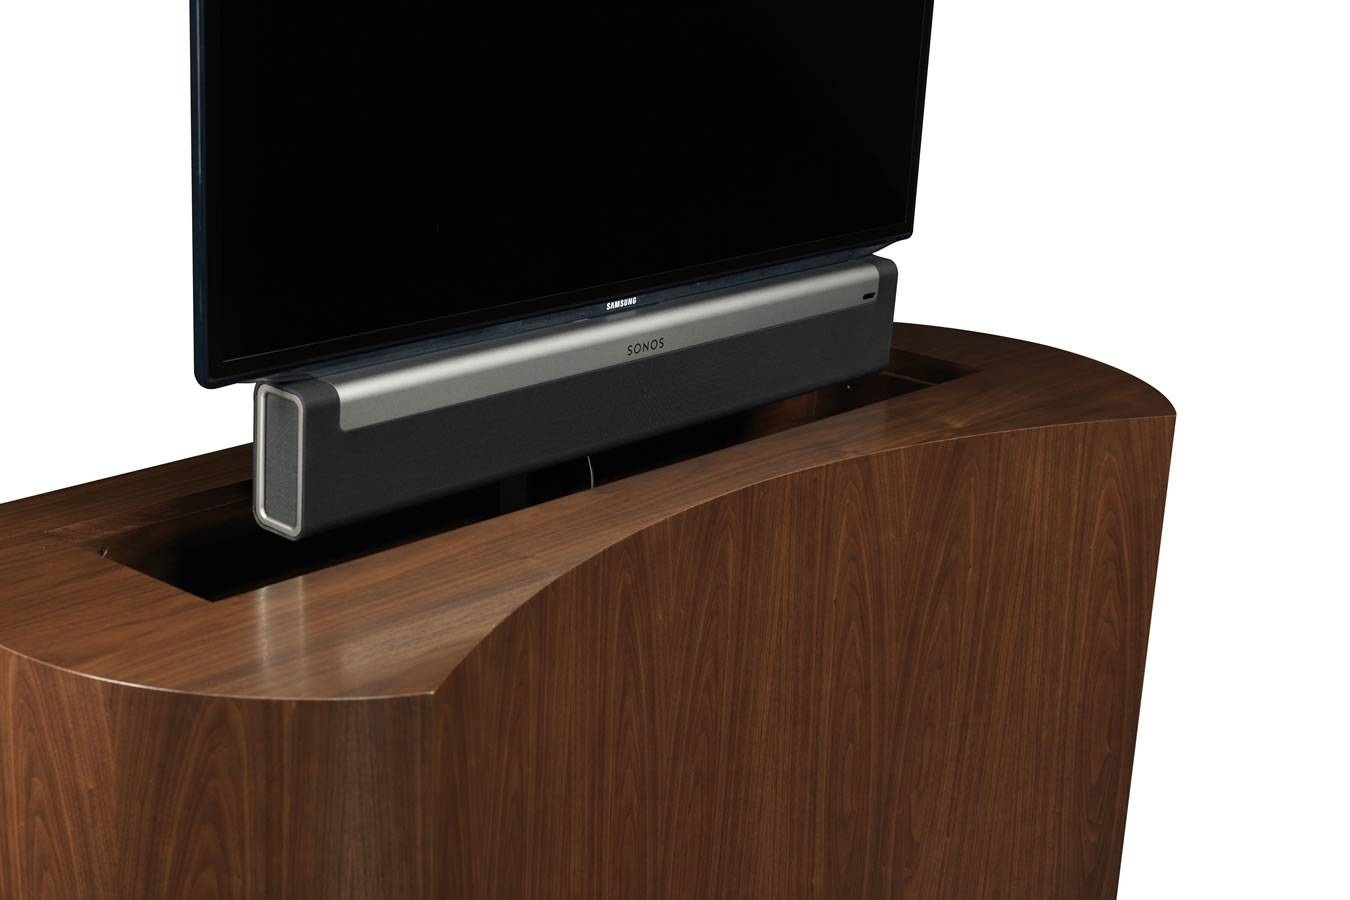 Sonos Sound Bar Playbar With Tv Lift Cabinet – Cabinet Tronix With Sonos Tv Stands (View 12 of 15)